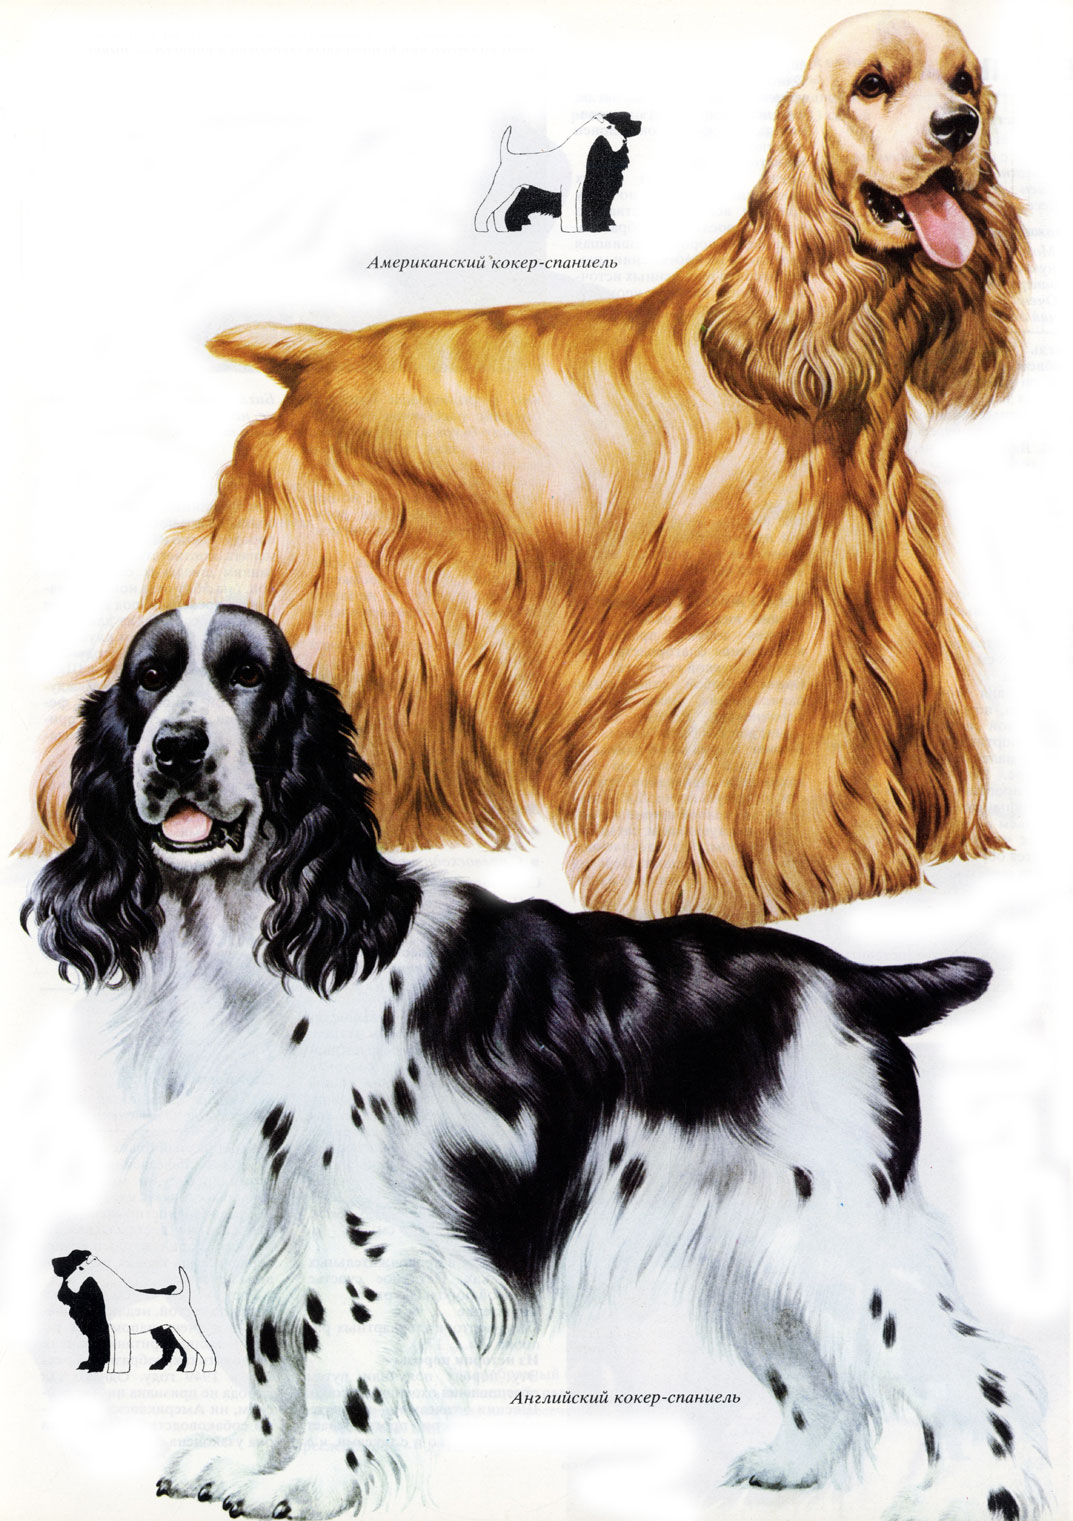 a history of the evolution of the american cocker spaniel American cocker, great dane breeds owned & exhibited: american cocker, great dane, german shepherd american cocker spaniel - history / evolution.